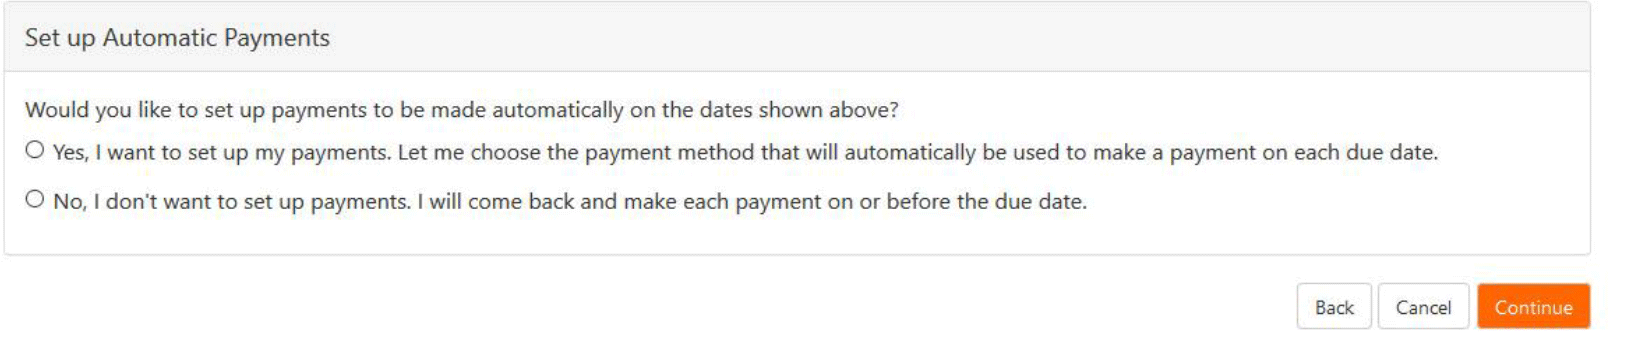 Payment portal sample image8